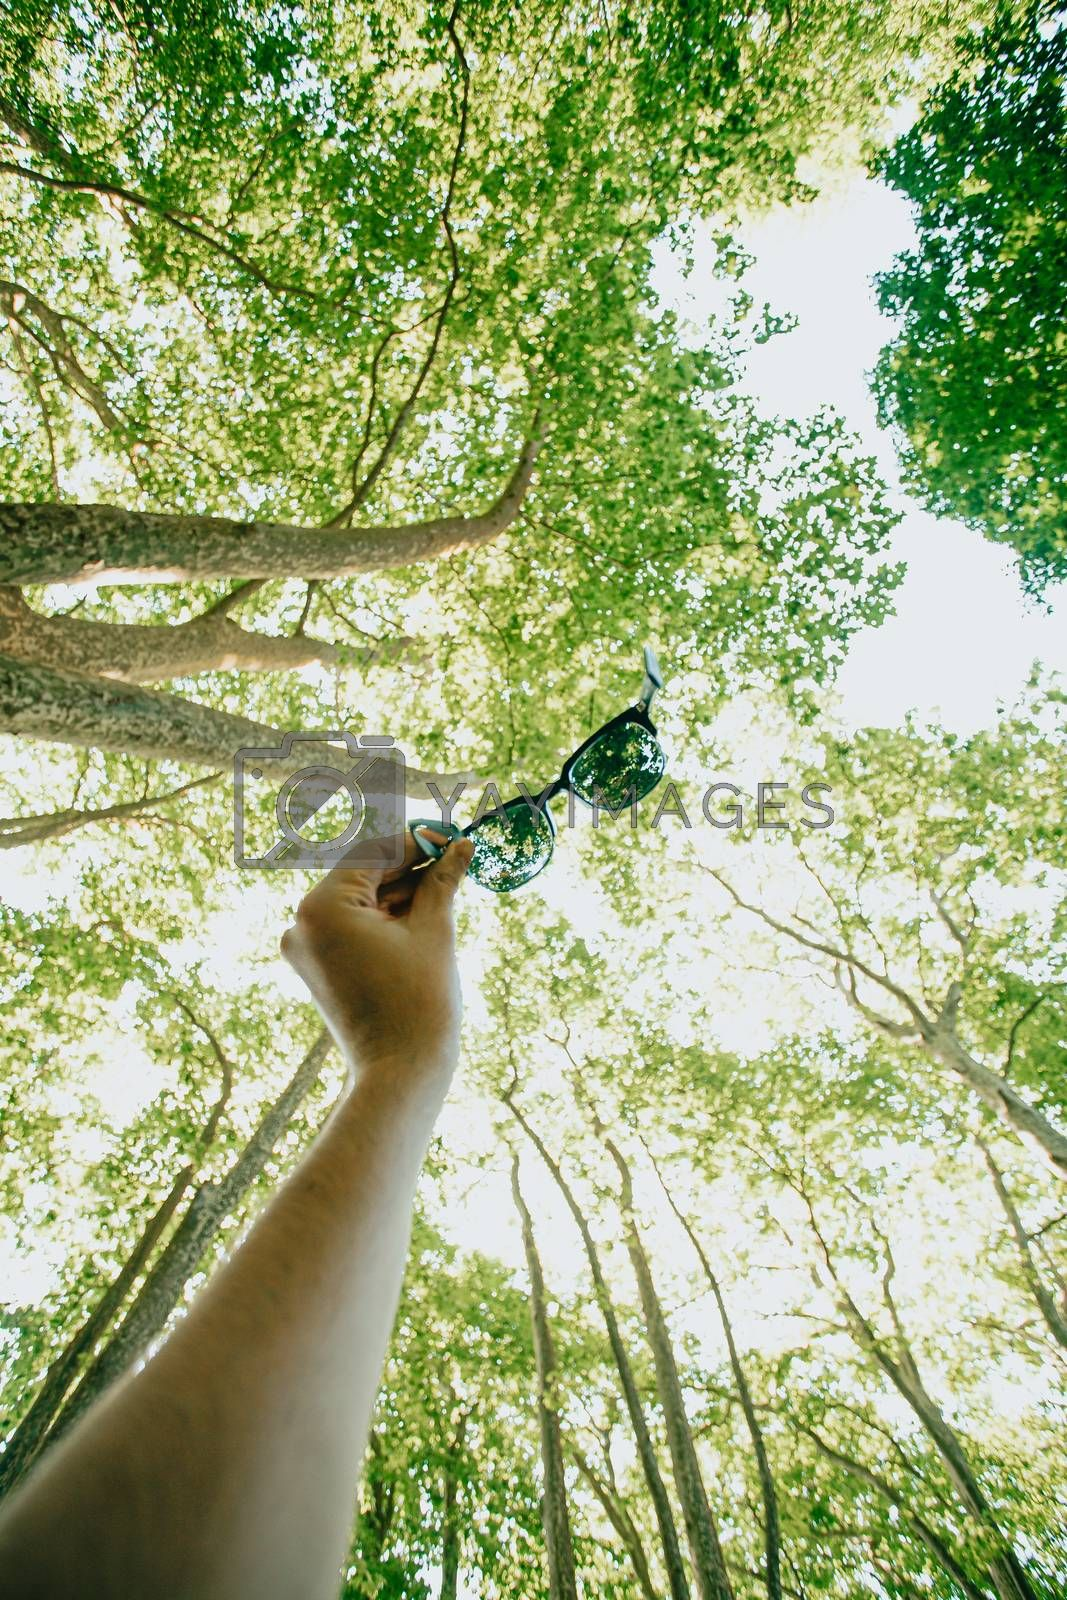 A male hand grabbing the sunglasses in the air with the trees as the background